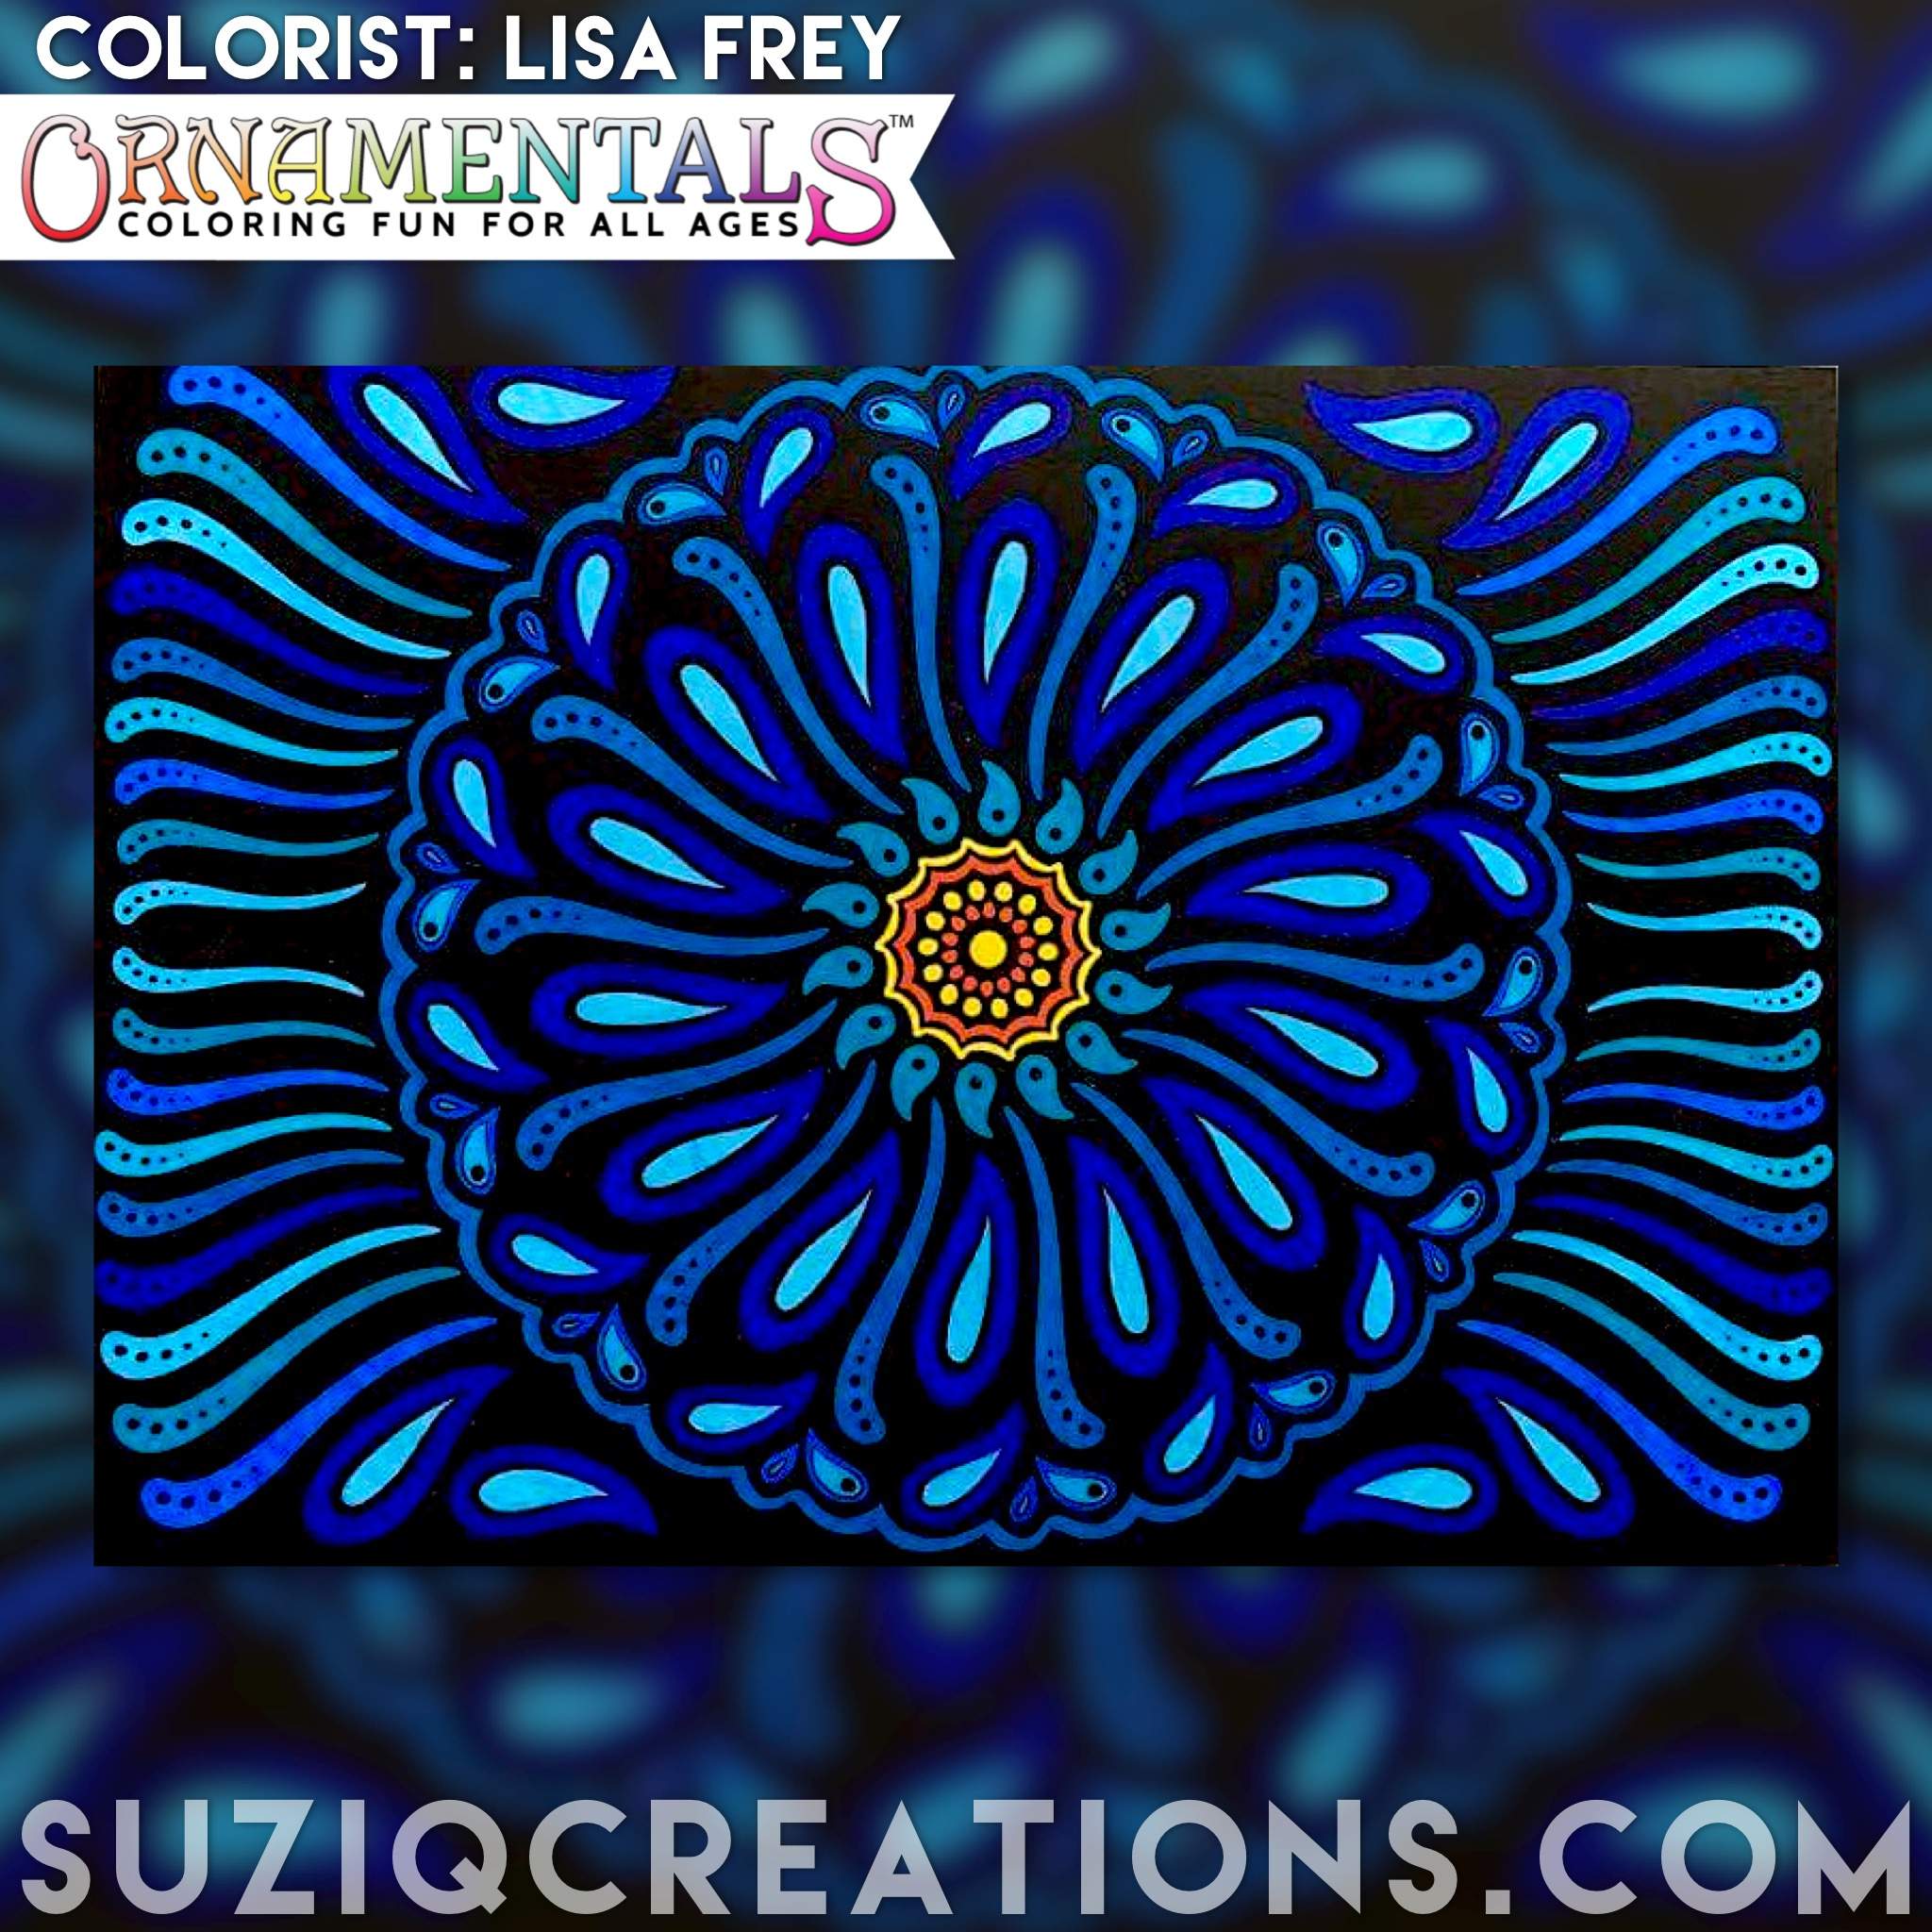 "From <i><a href=""http://www.suziqcreations.com/loa/"">OrnaMENTALs Lights Out</a></i> - colorist Lisa Frey."